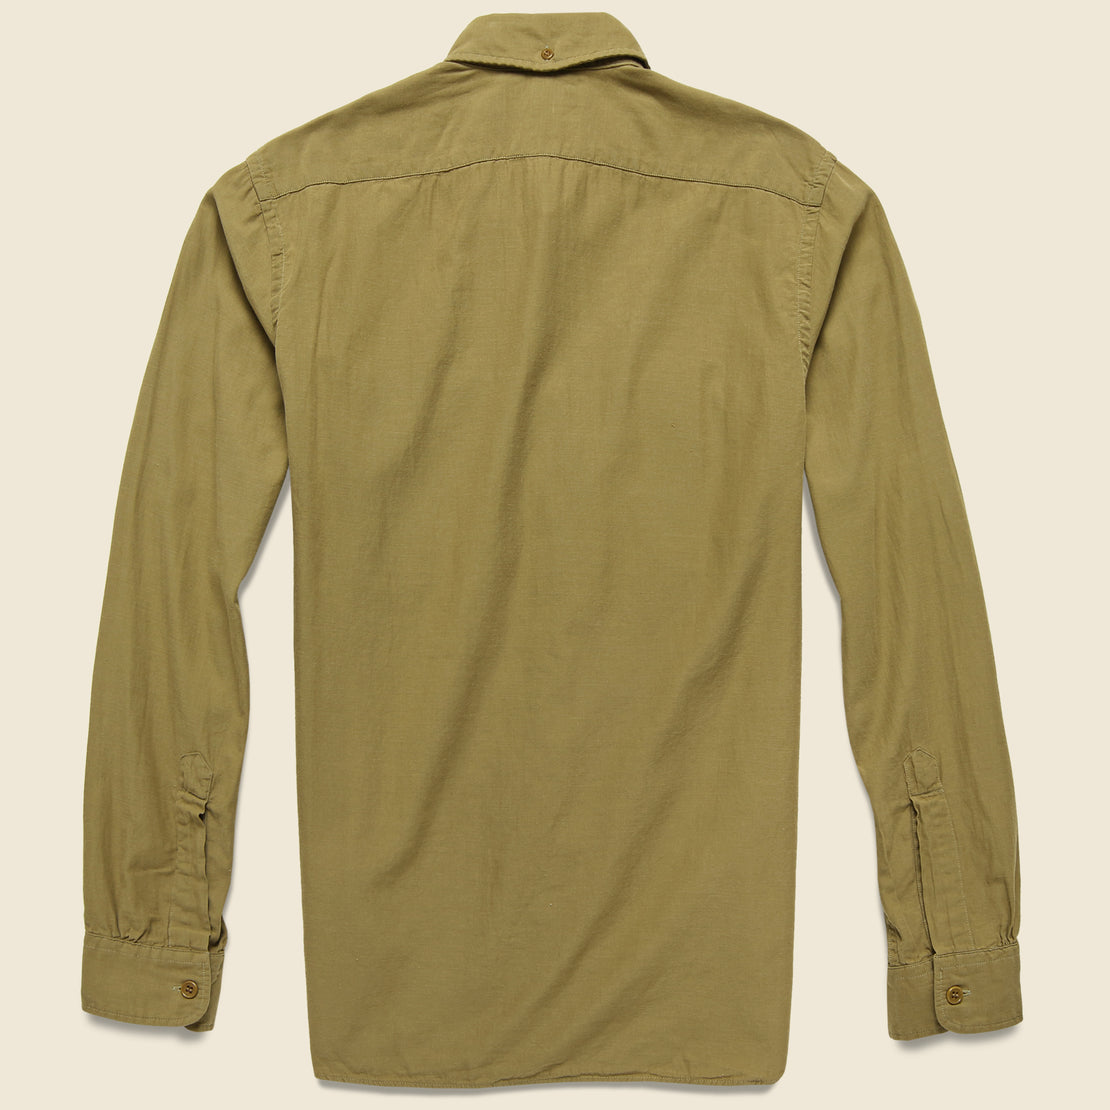 Clayton Sateen Military Shirt - Desert Tan